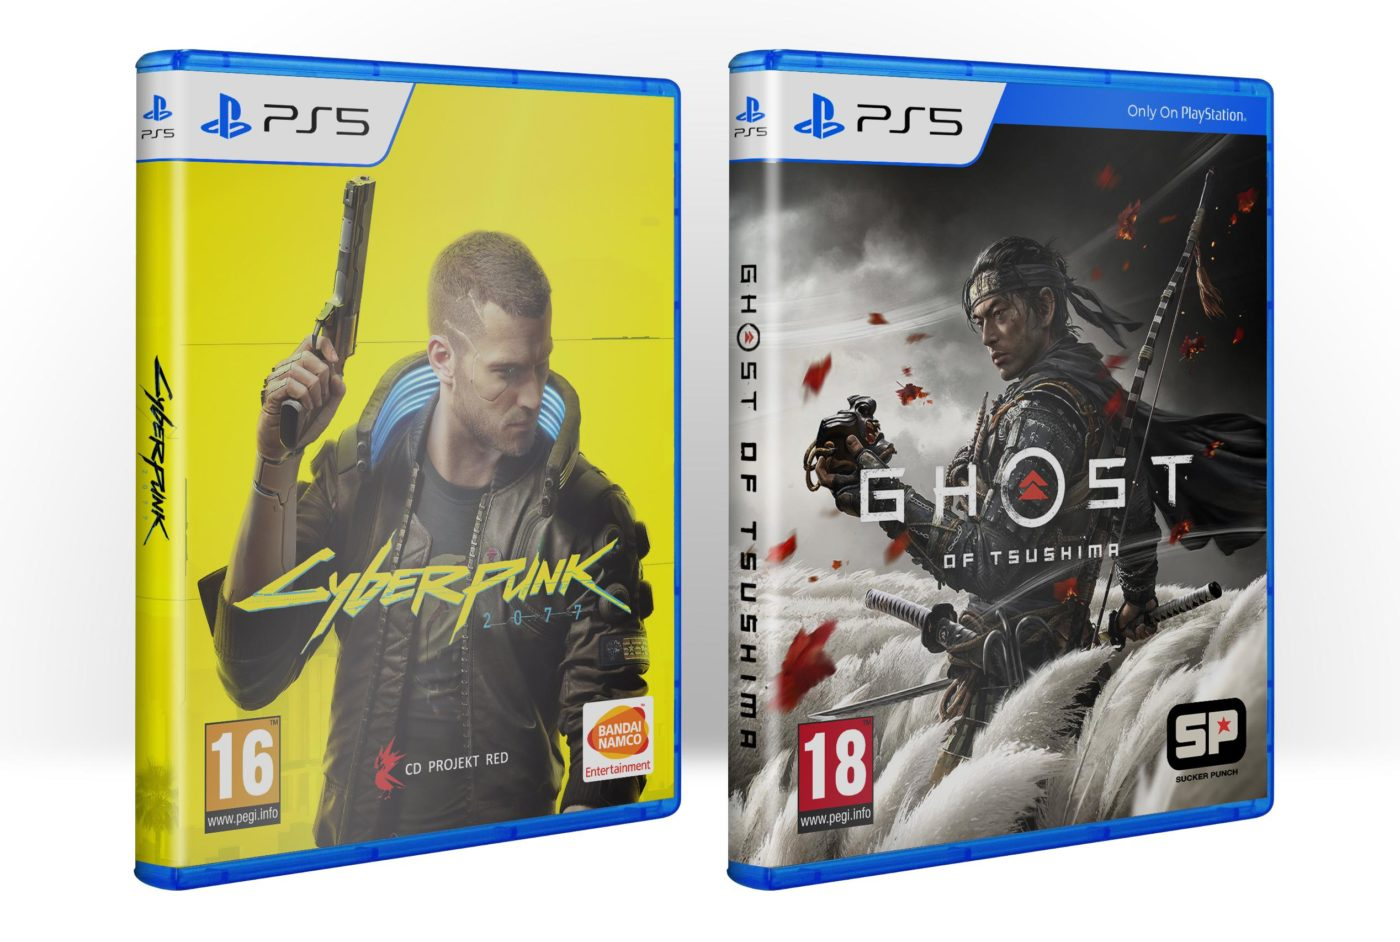 ps5 game cases, Check Out These Fantastic Fan-Made PS5 Game Cases, MP1st, MP1st